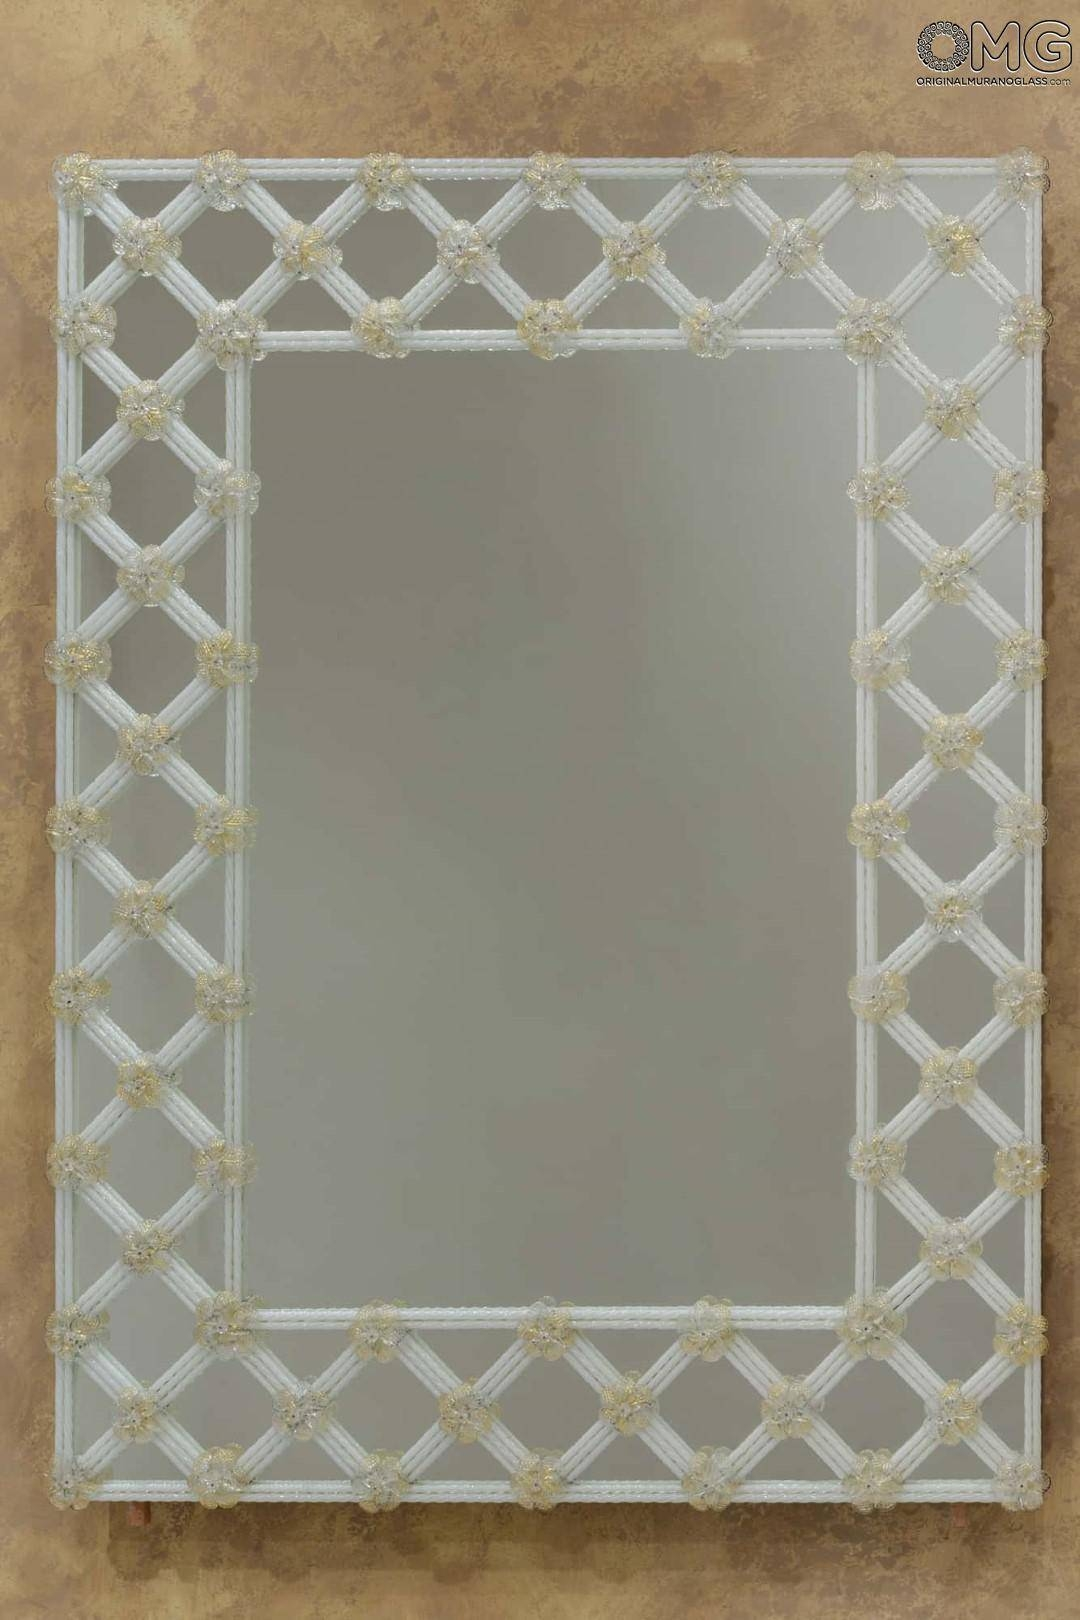 Venetian Mirrors – Engraved And With Murano Glass : Pure White And Regarding Gold Venetian Mirrors (View 24 of 25)